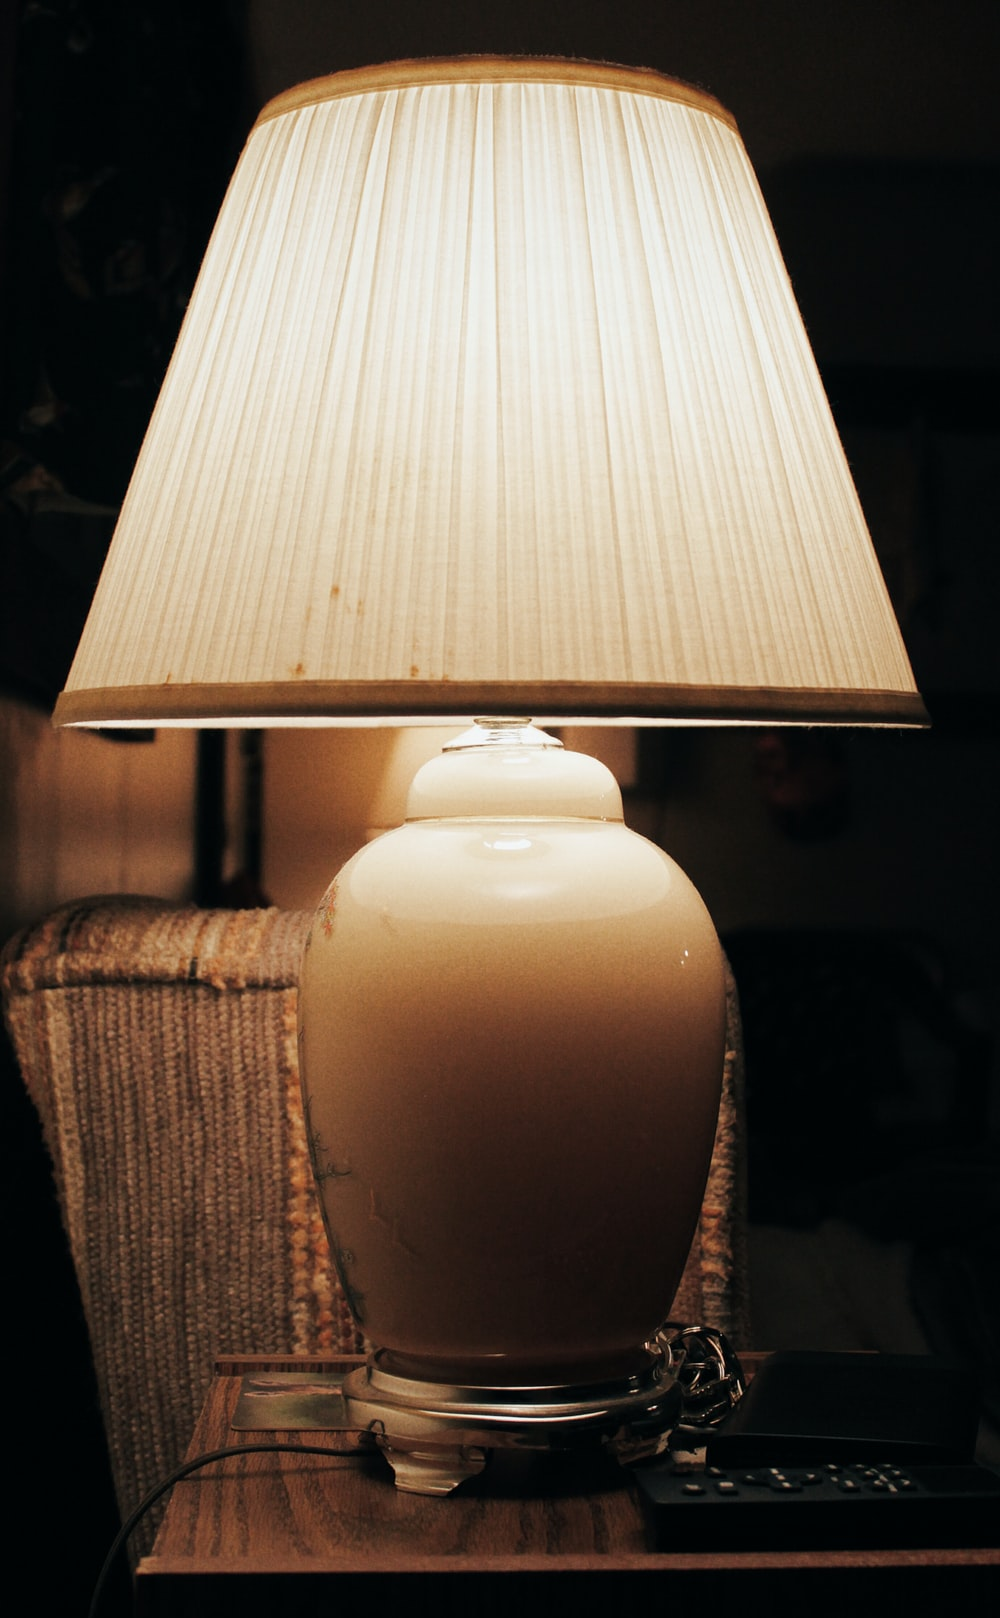 table lamp turned on